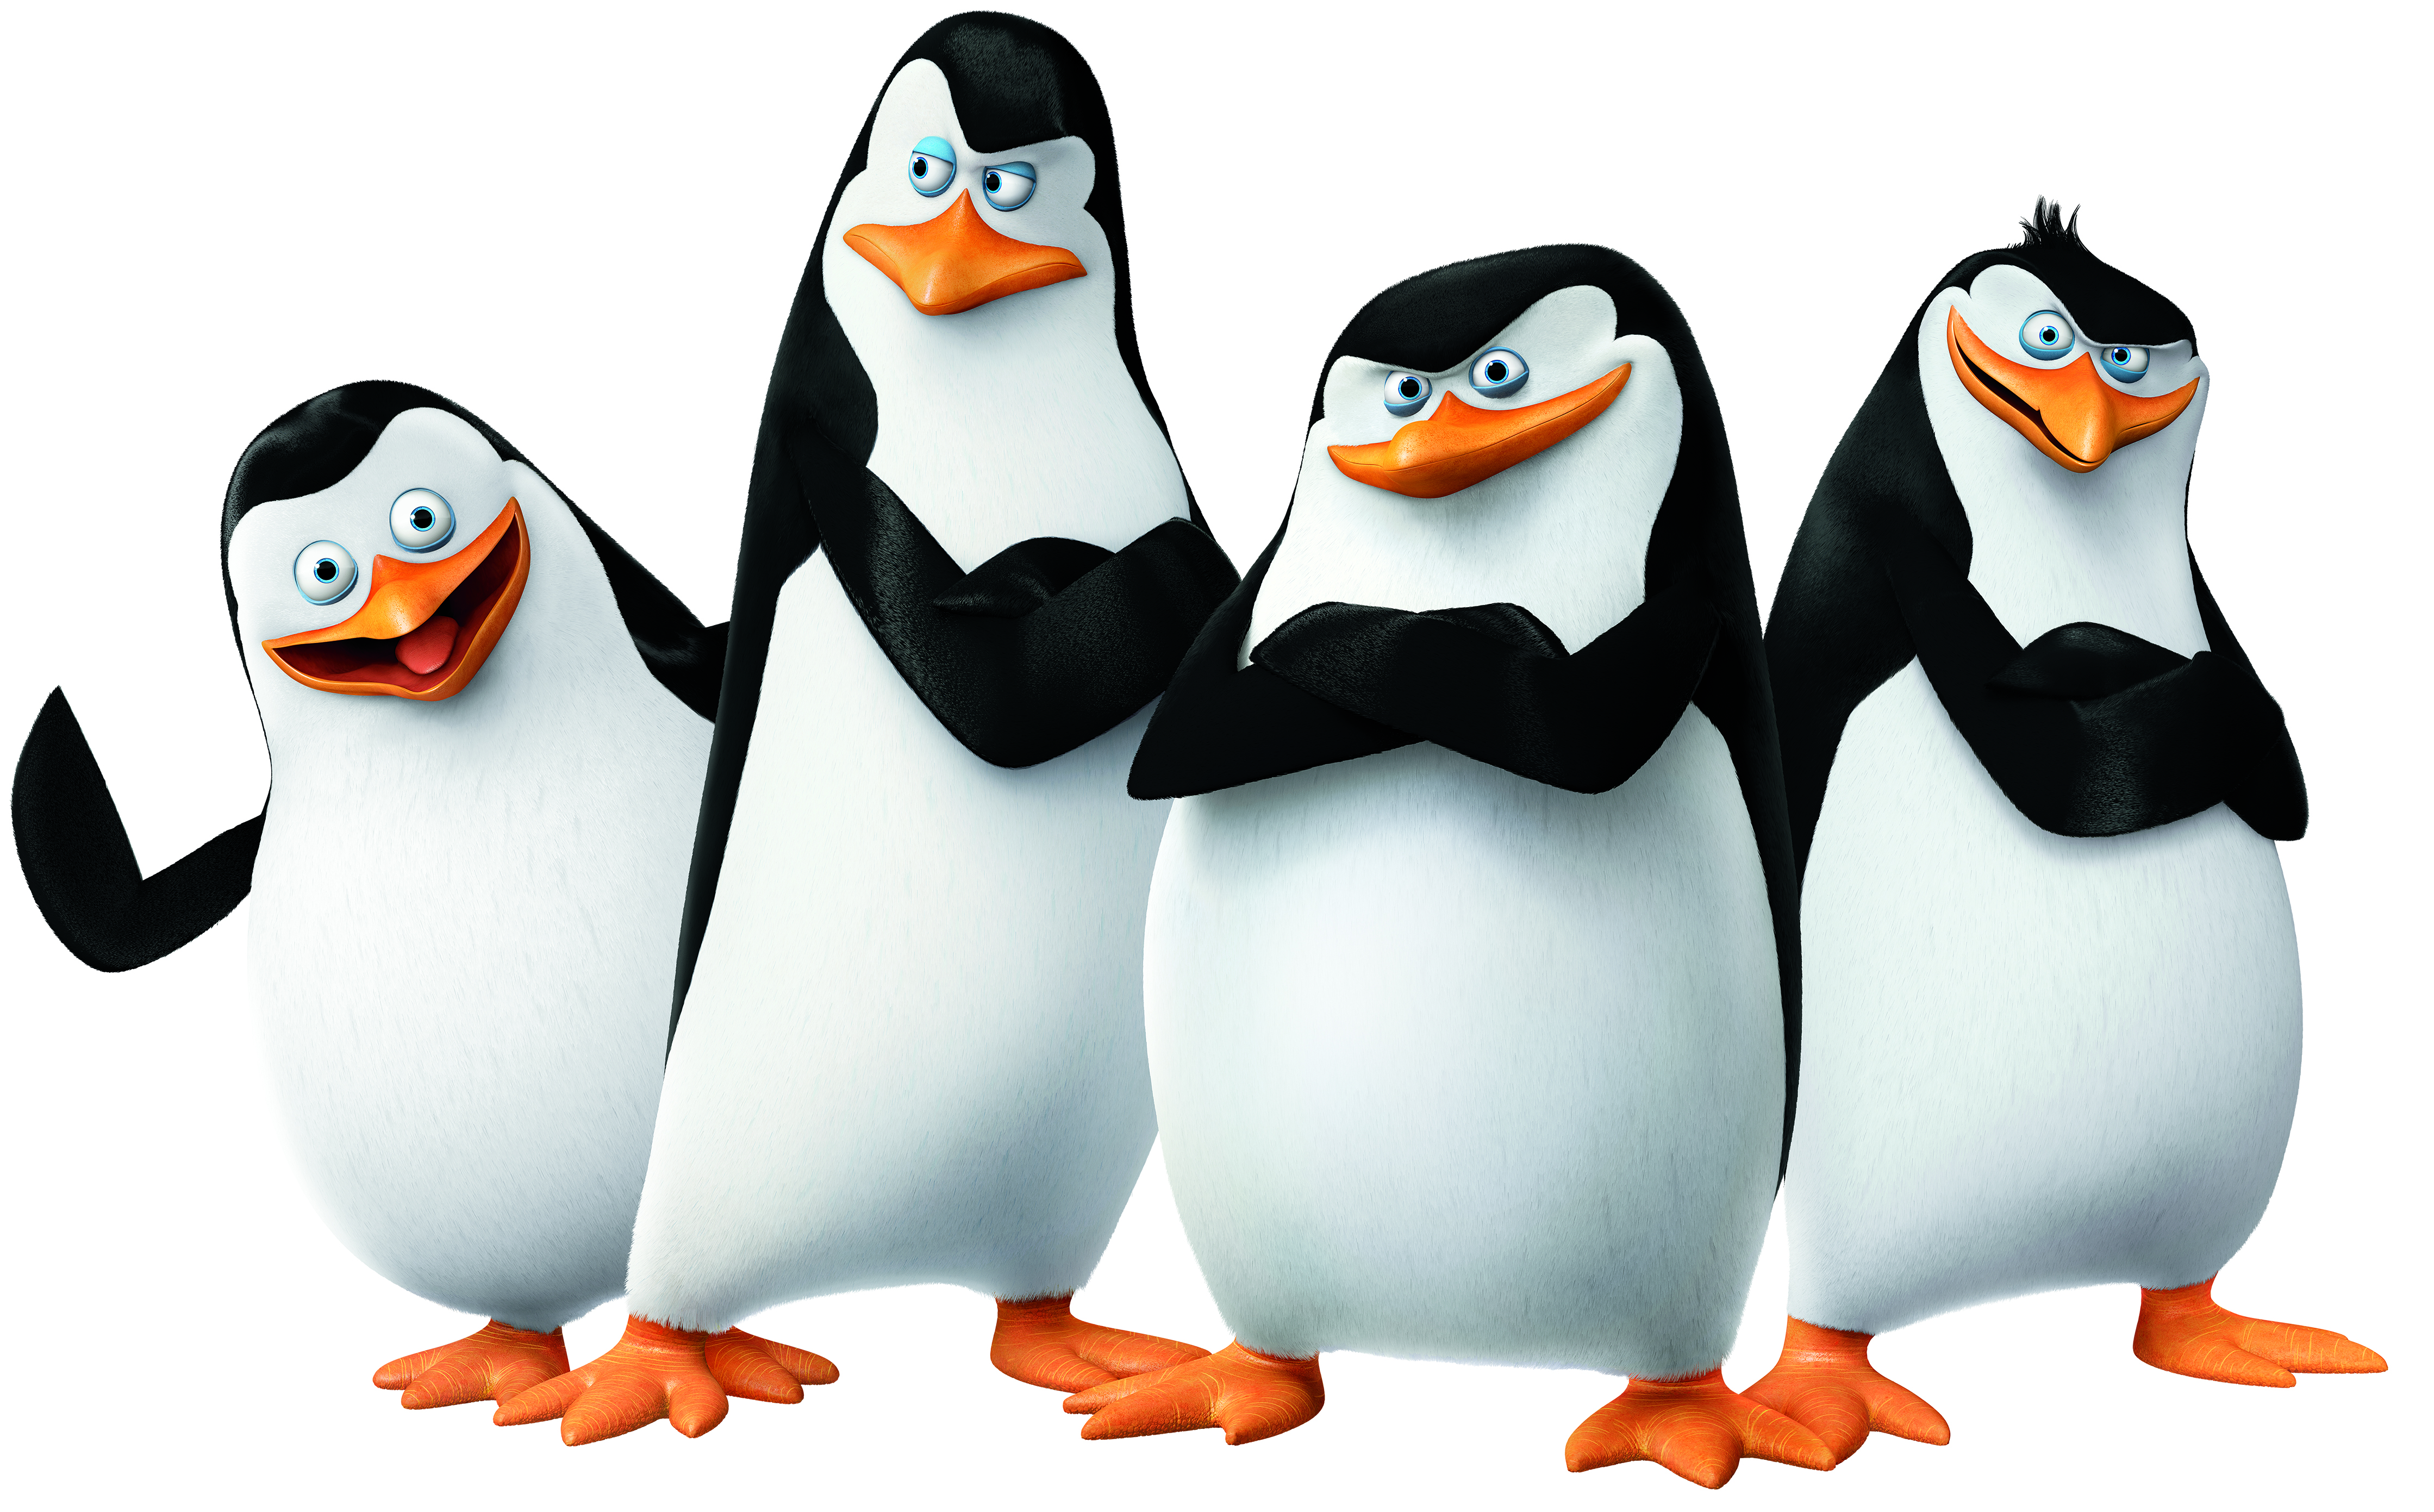 peng cg penguins 14